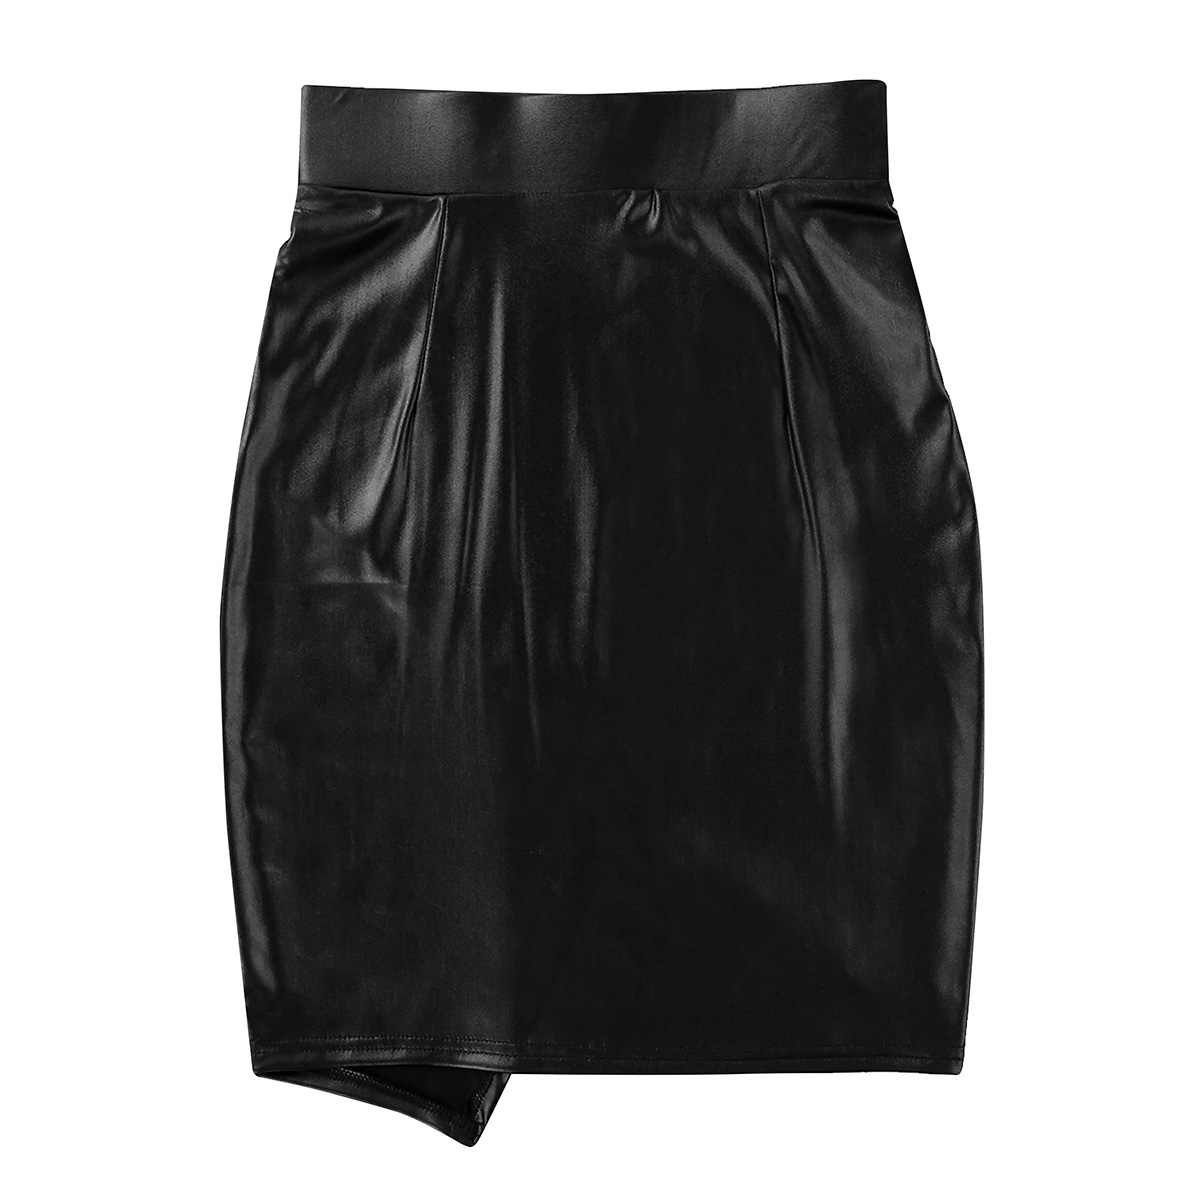 Fashion Club Evening Parties Skirts for Womens Wet Look Faux Leather High Waist Asymmetric Side Slit Bodycon Pencil Skirt